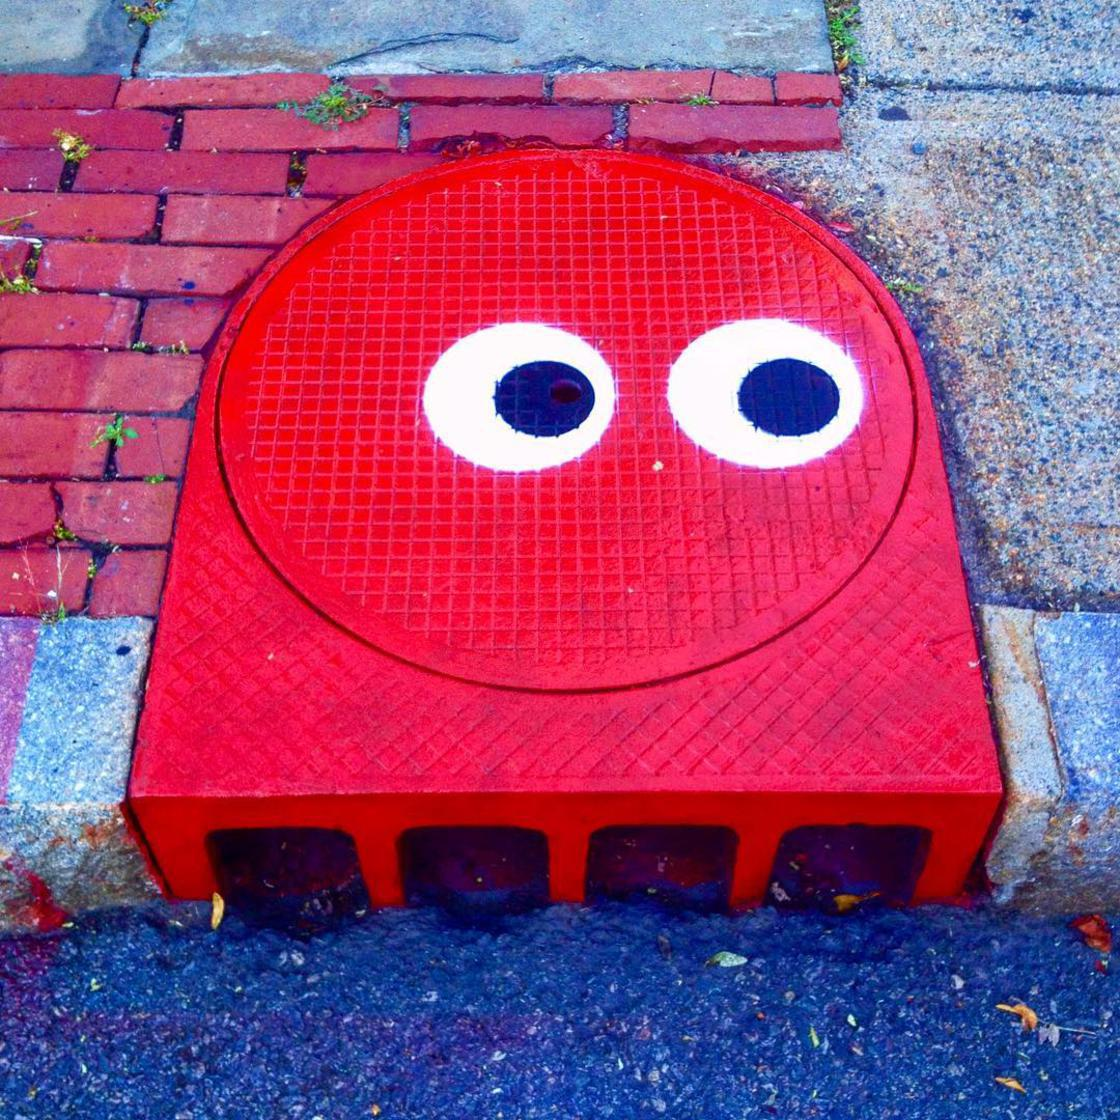 18 - 18 Examples Of Awesome Street Art